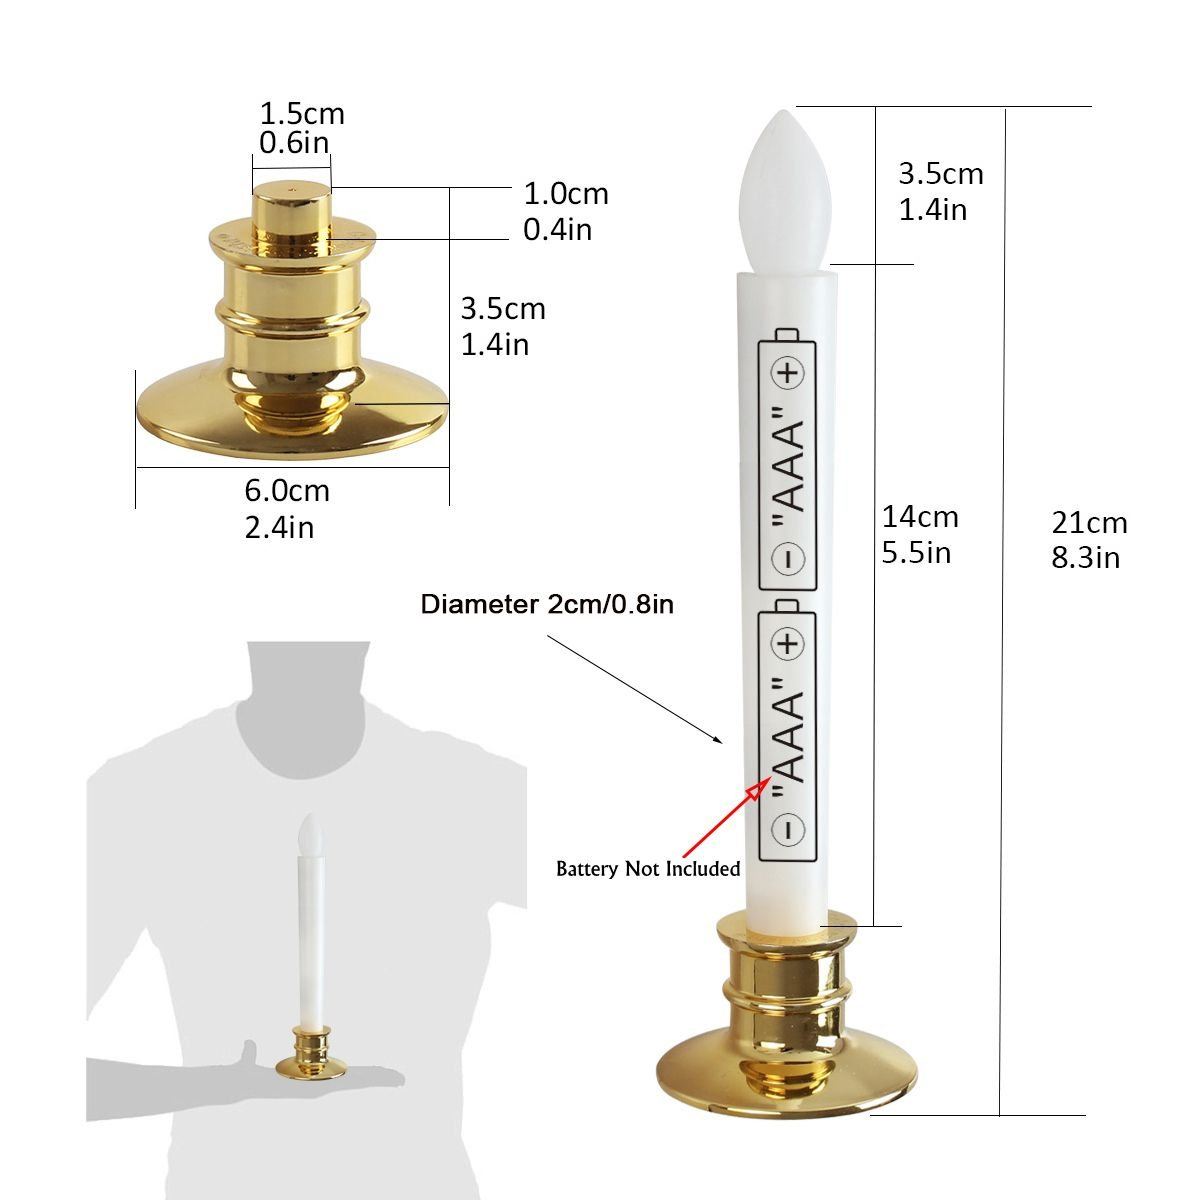 Window Candles With Remote Timers Battery Operated Flickering Flameless Led Electric Candle Lights With Removable Tapers Pillar Candle Holders For Christmas Decorations 6pcs Gold Base